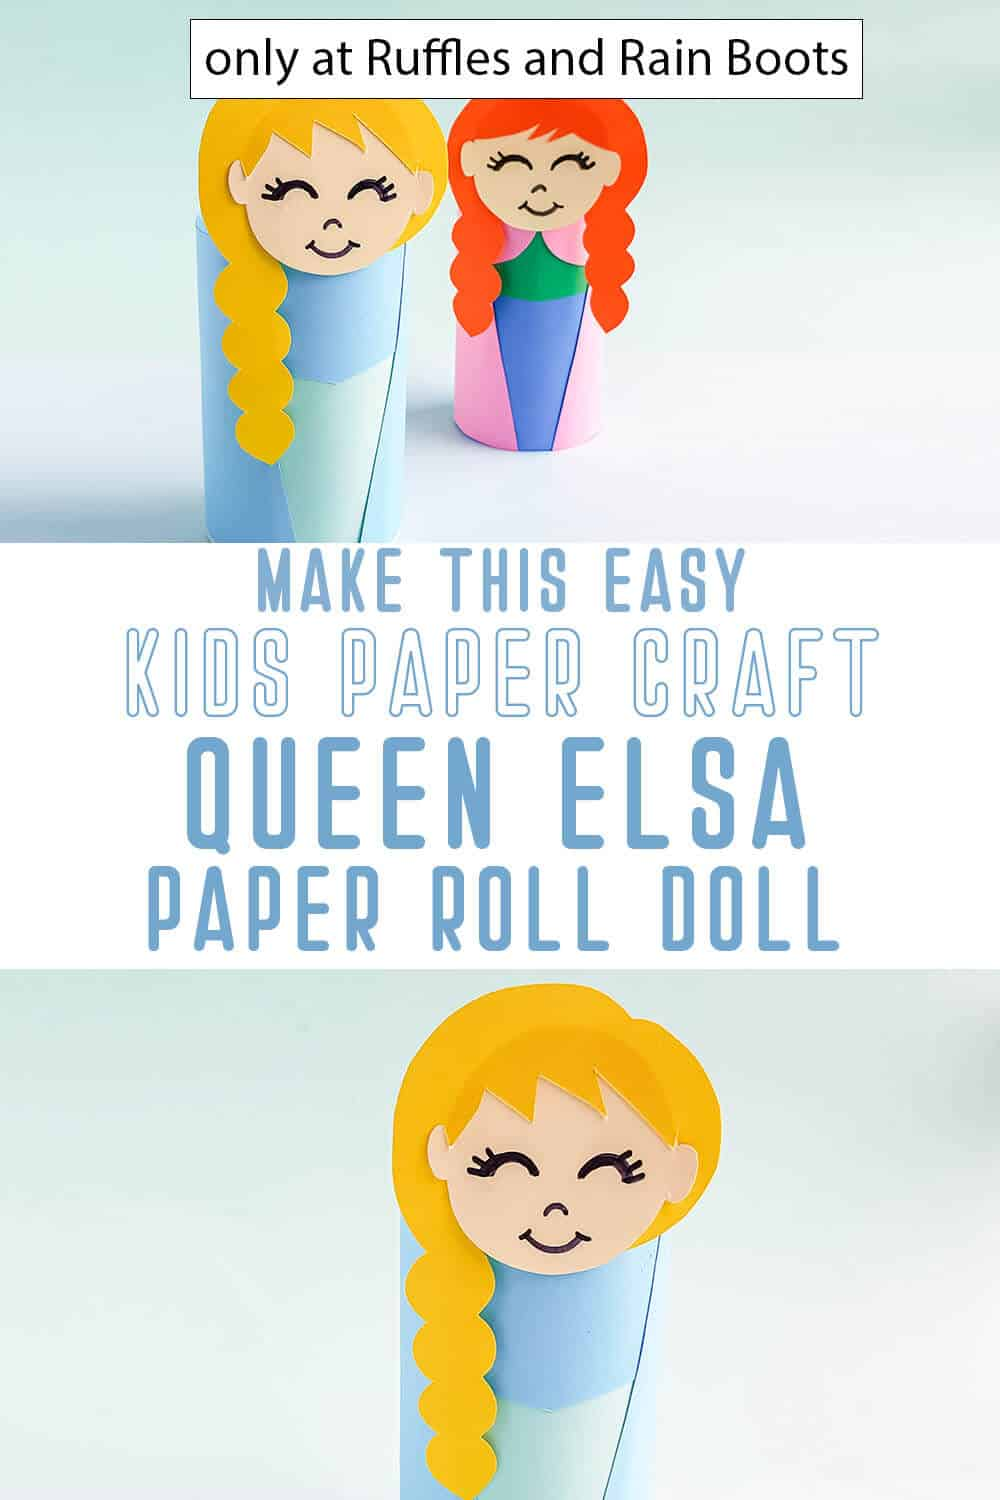 photo collage of frozen princess elsa paper roll doll kids craft with text which reads make this easy kids paper craft queen elsa paper roll doll